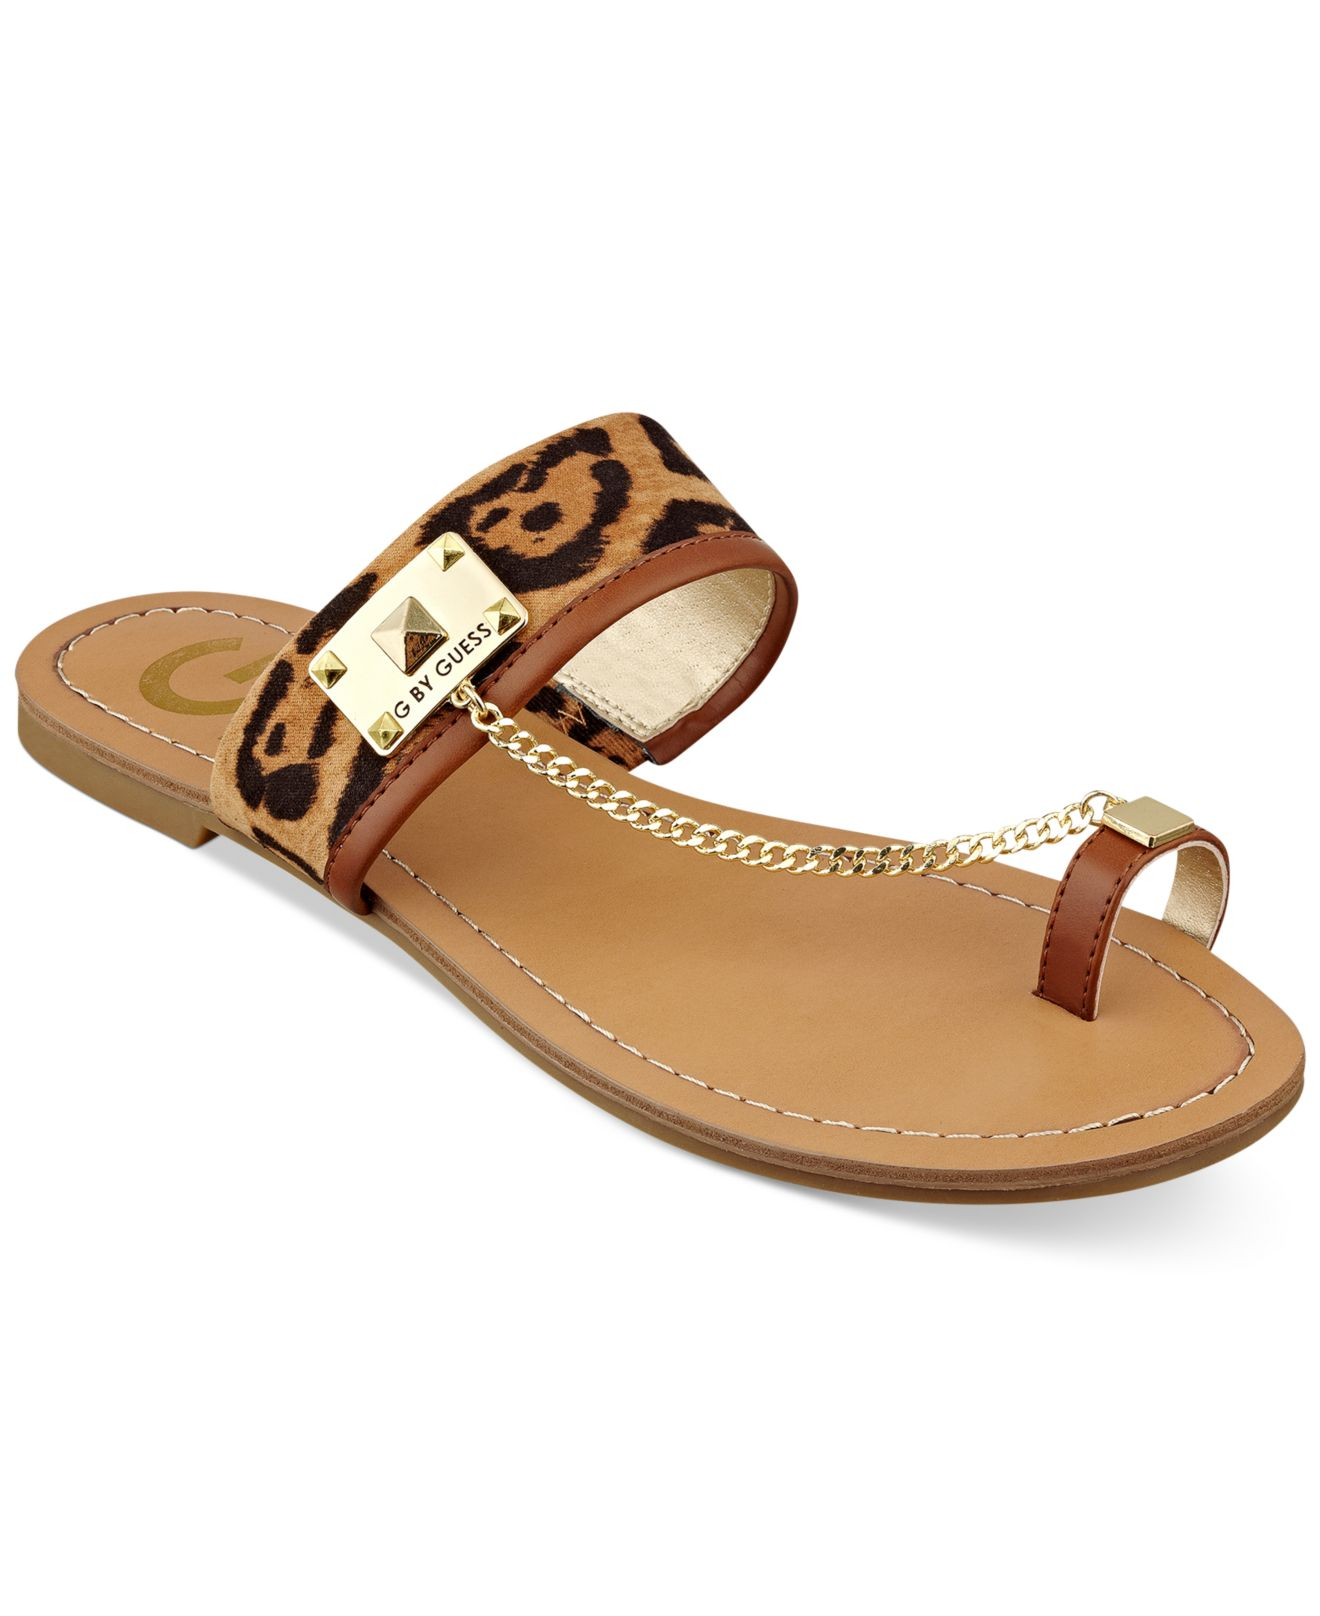 81338d1f023 Lyst - G by Guess Women S Lucia Toe Ring Flat Sandals